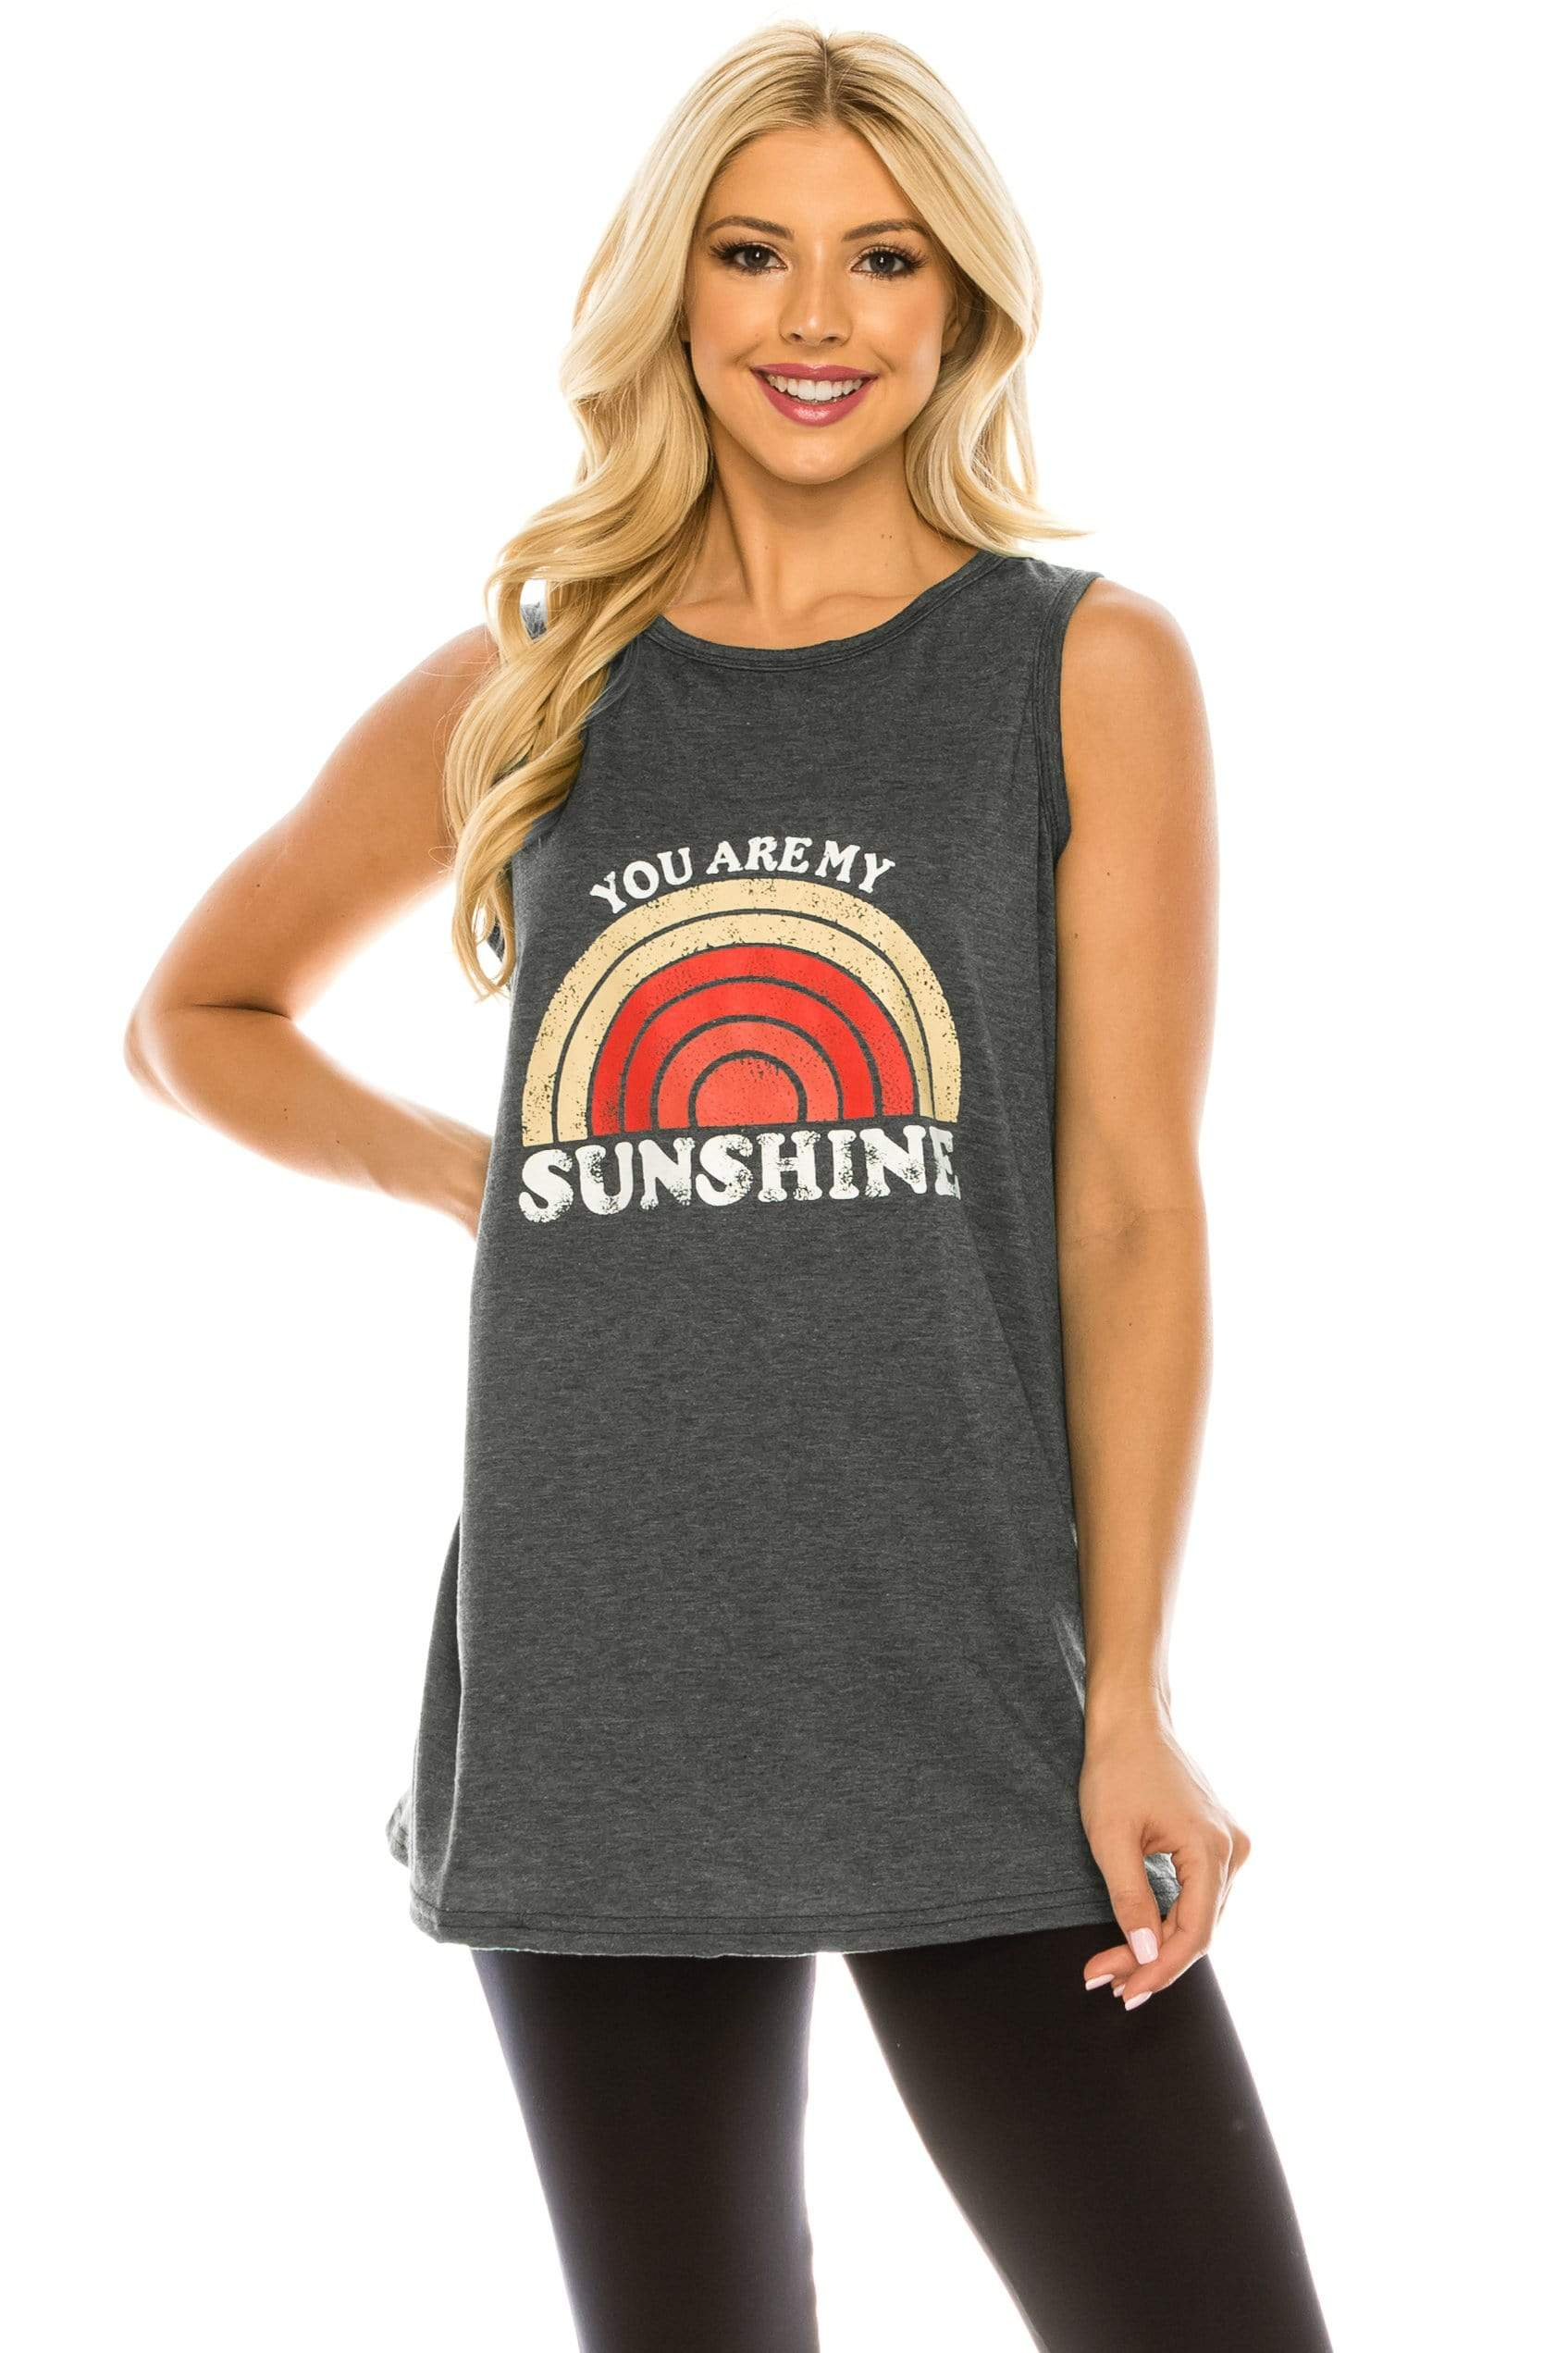 Haute Edition WOMEN'S TOP DARK CHARCOAL / S Haute Edition Women's Sunshine Loose Fit Tank top. Plus size available